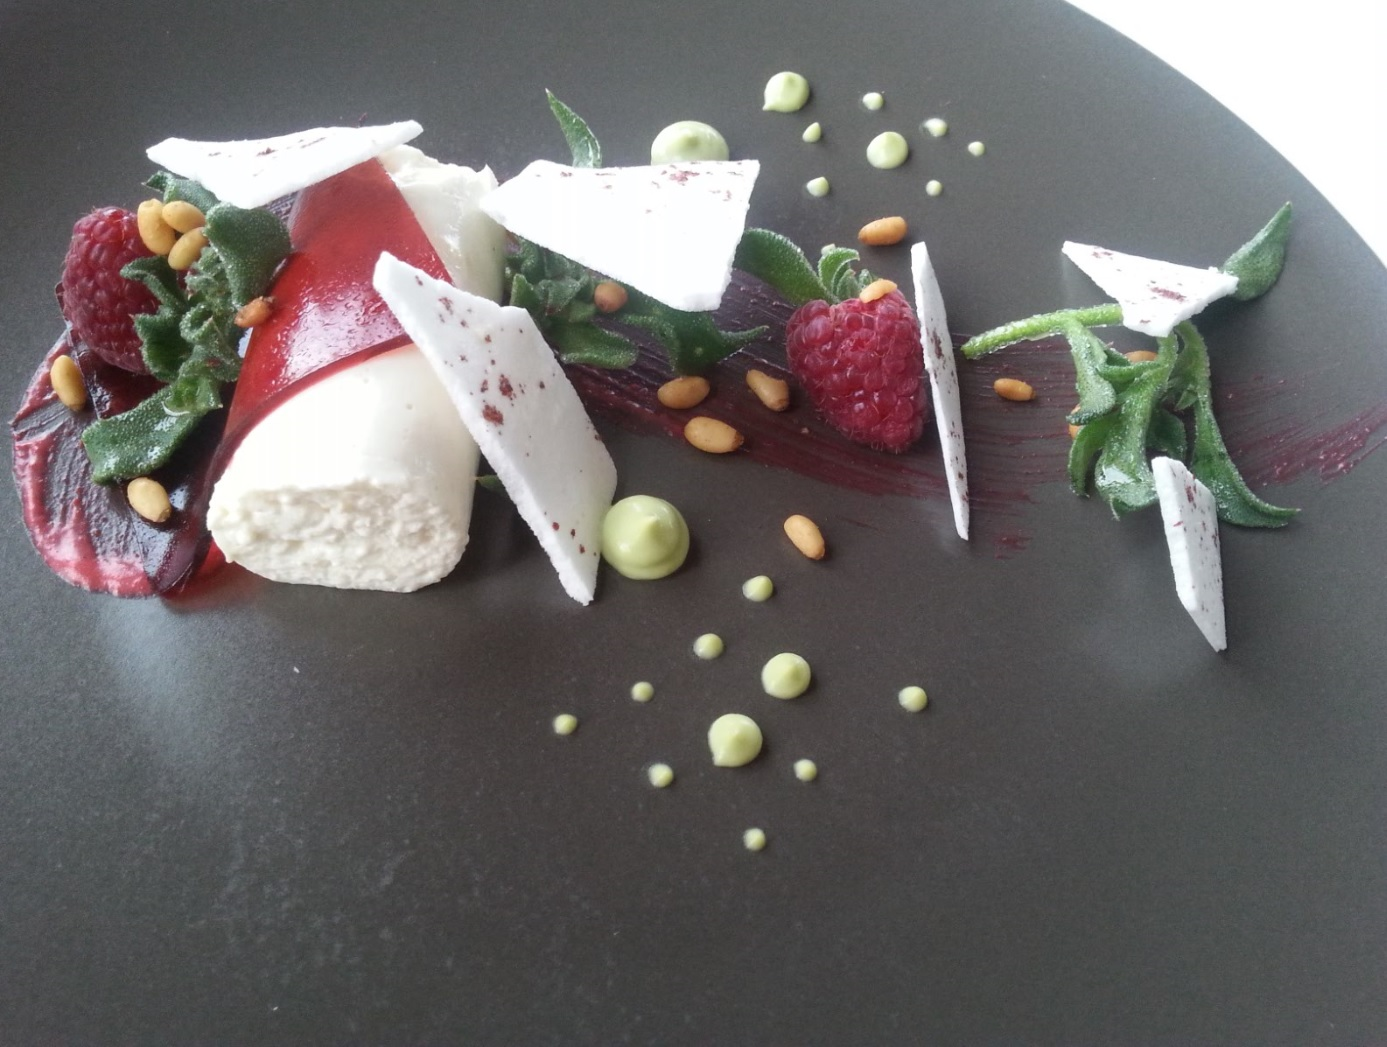 Vegan course at Waters Edge restaurant, Canberra